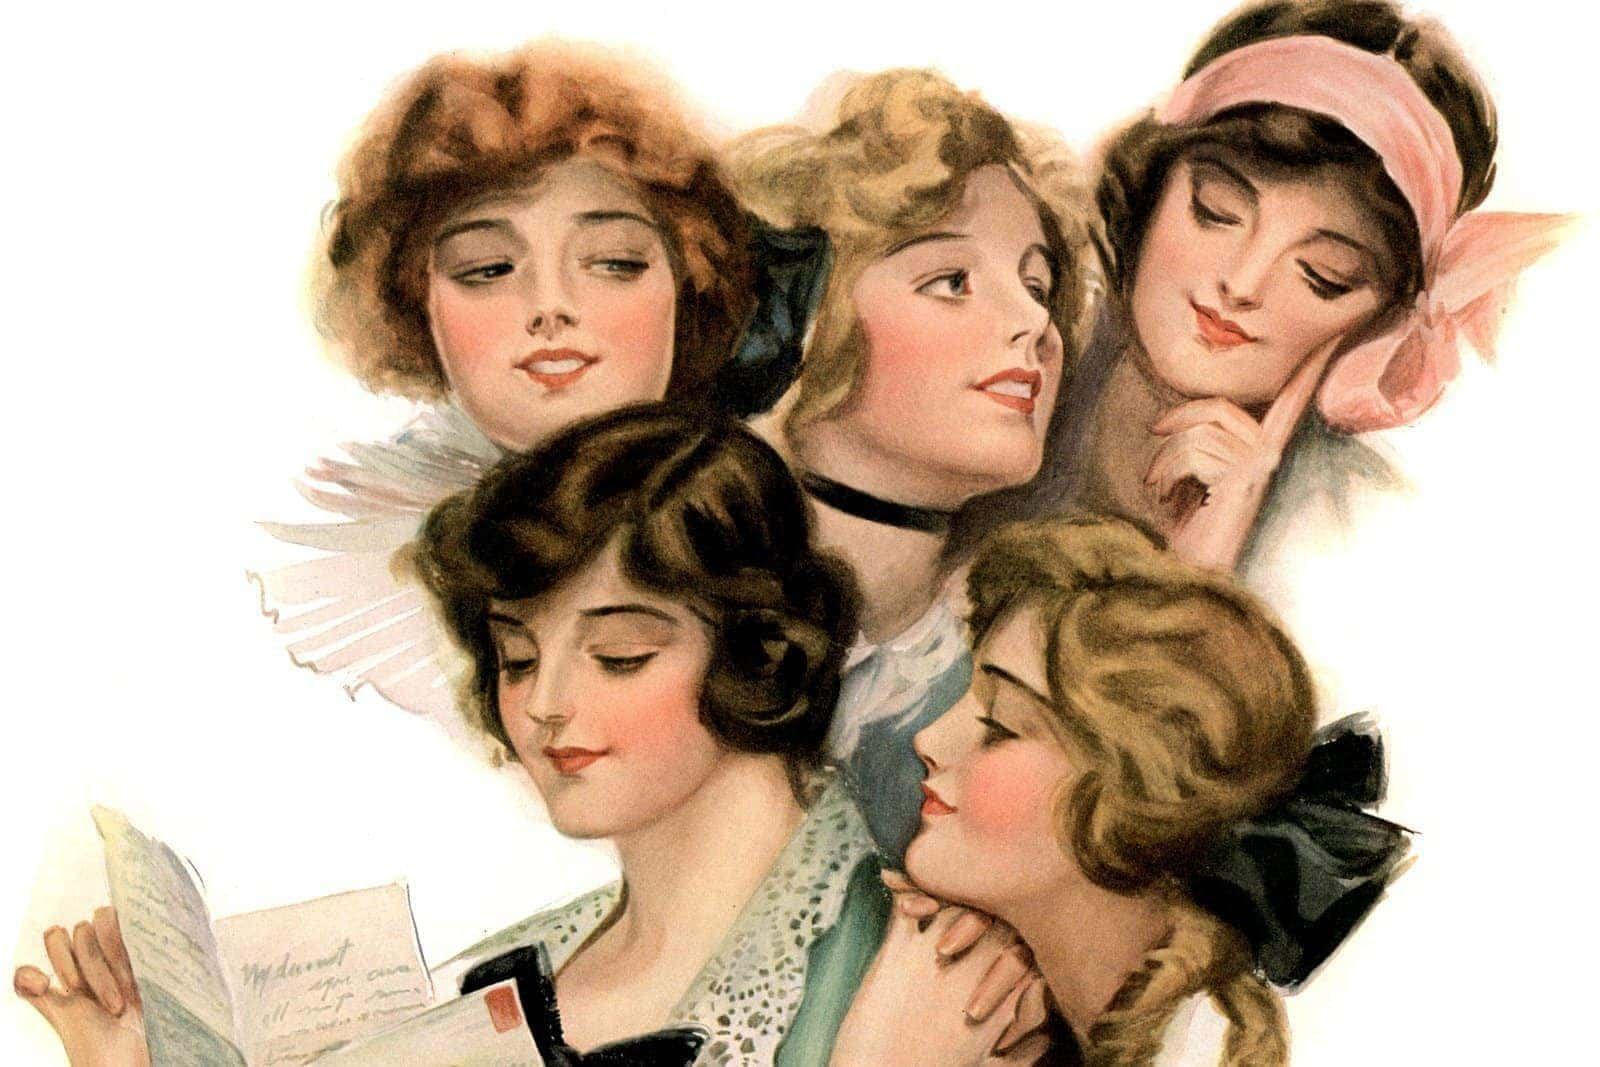 Pretty vintage hairstyles for women from the 1910s